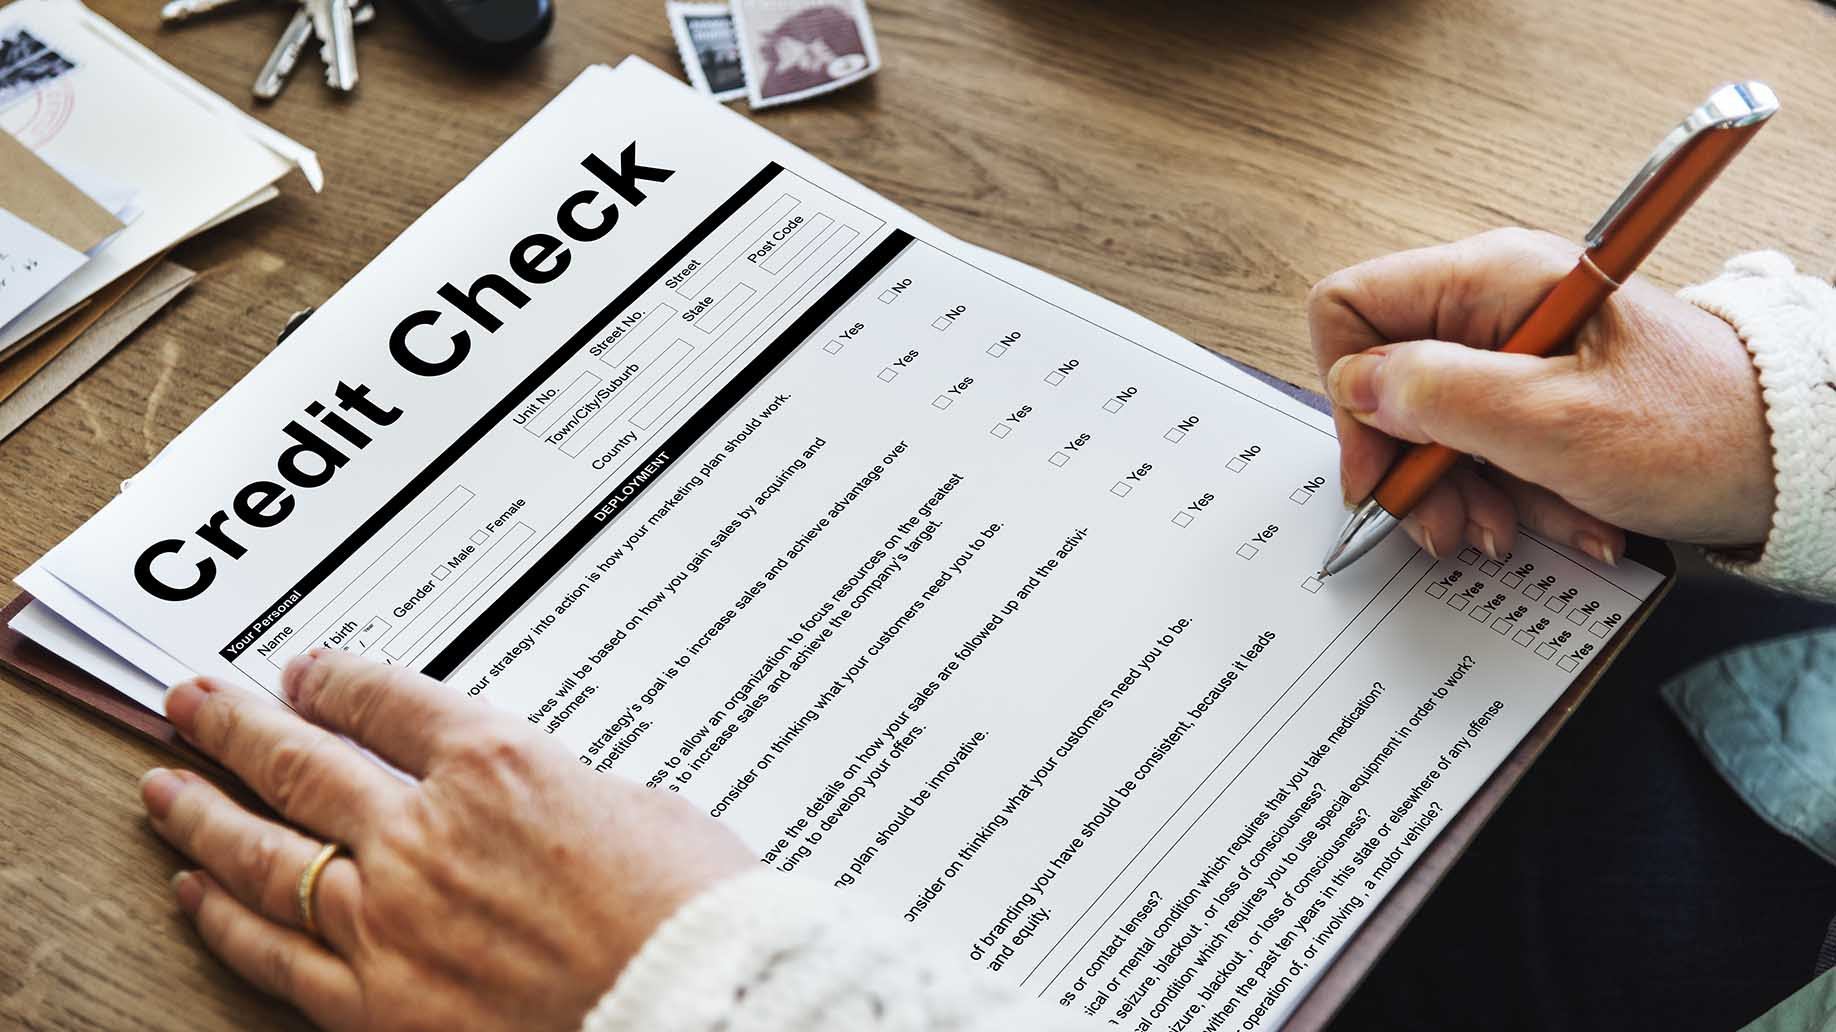 How To Run A Credit Check On A Potential Tenant For Landlords